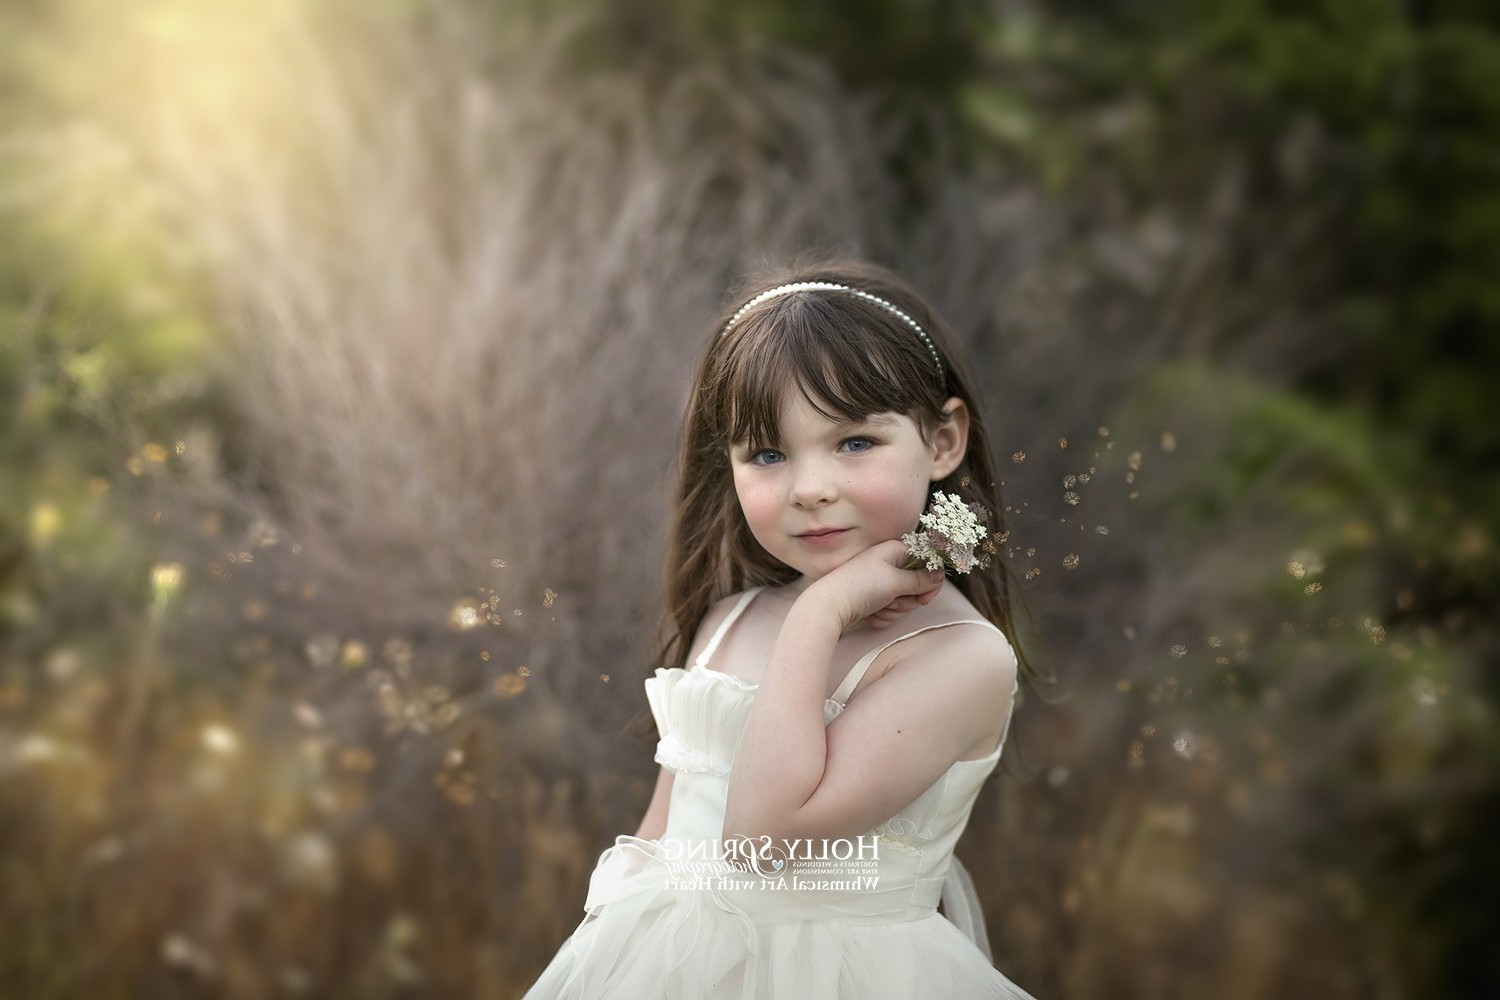 Cute Little Girl Hd Wallpaper Wallpaper Model Children Happy Wedding Dress Person